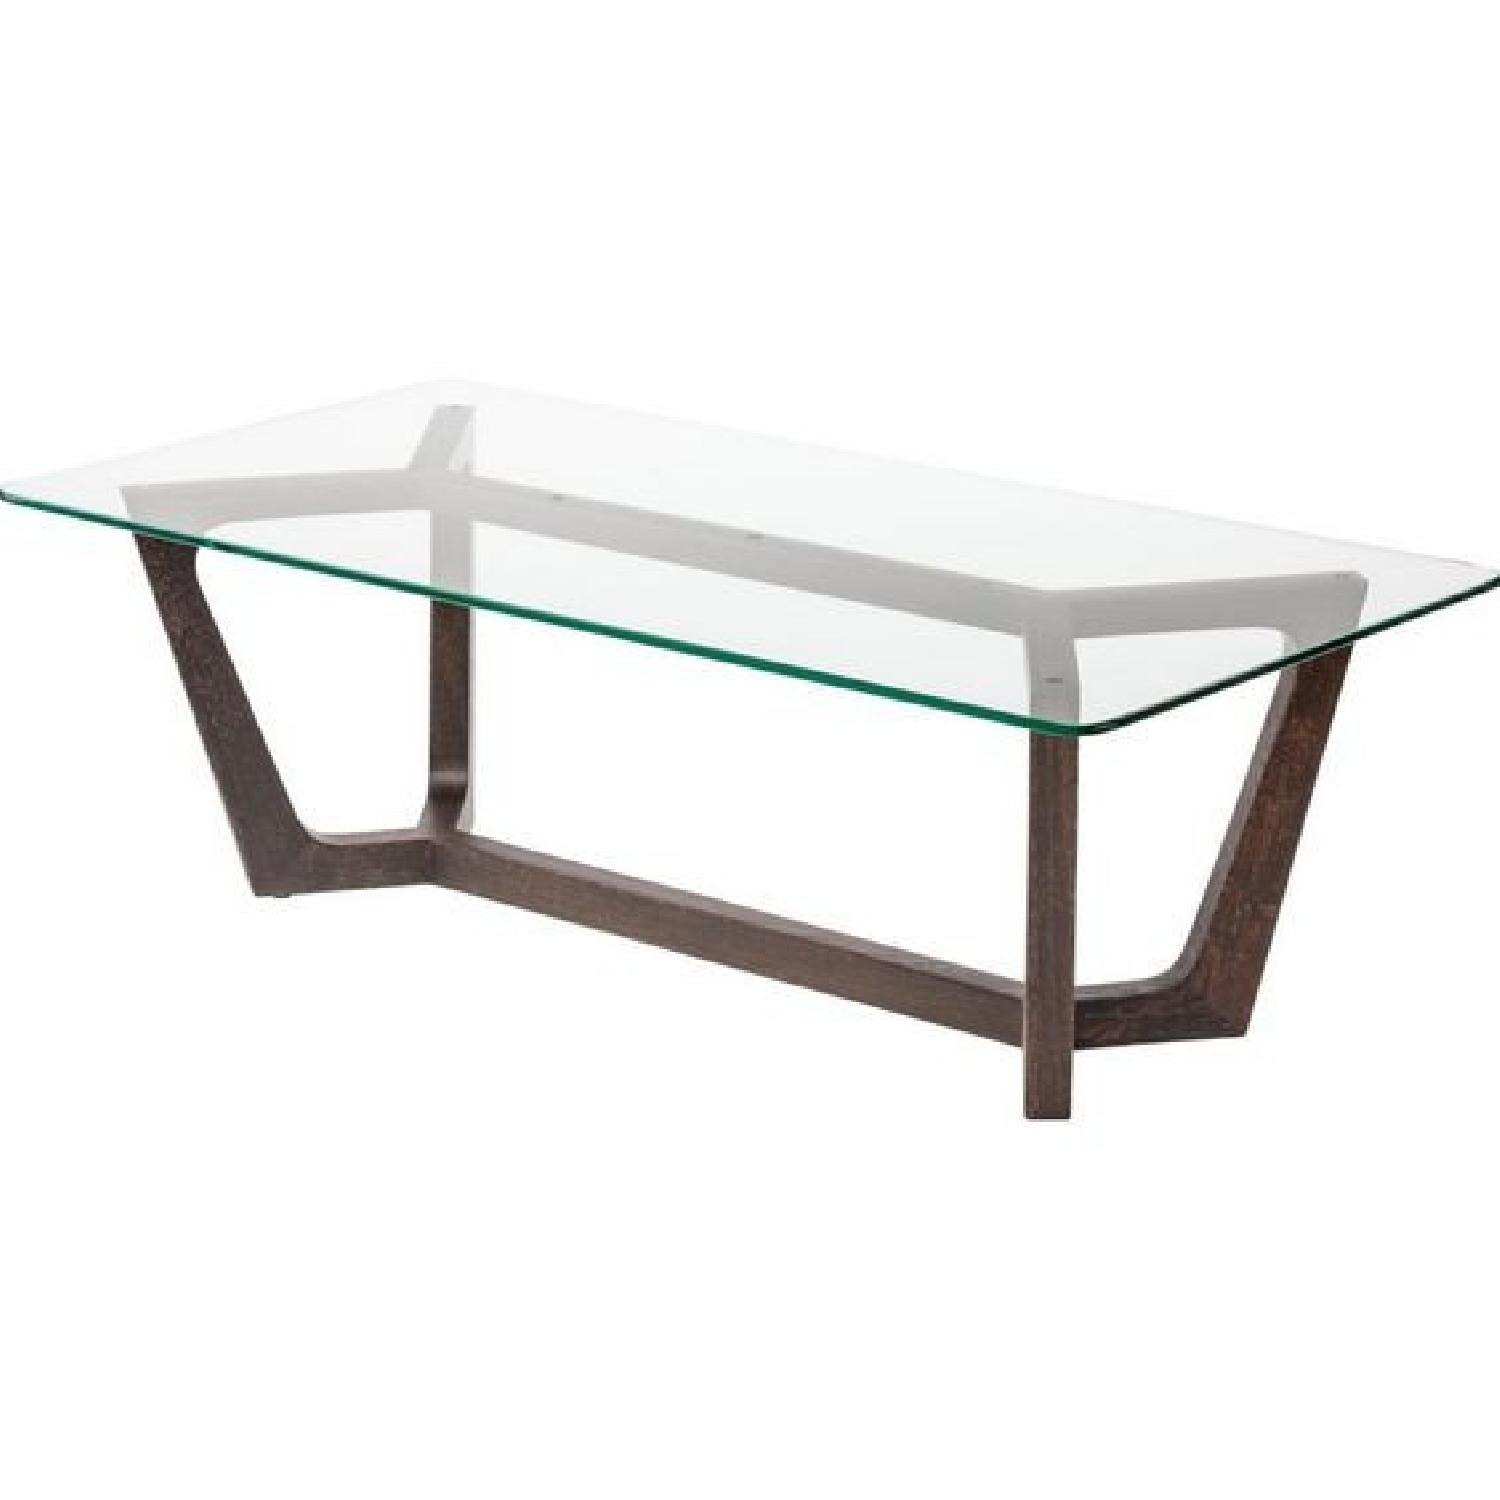 Dwell Studio Coffee Table - image-2